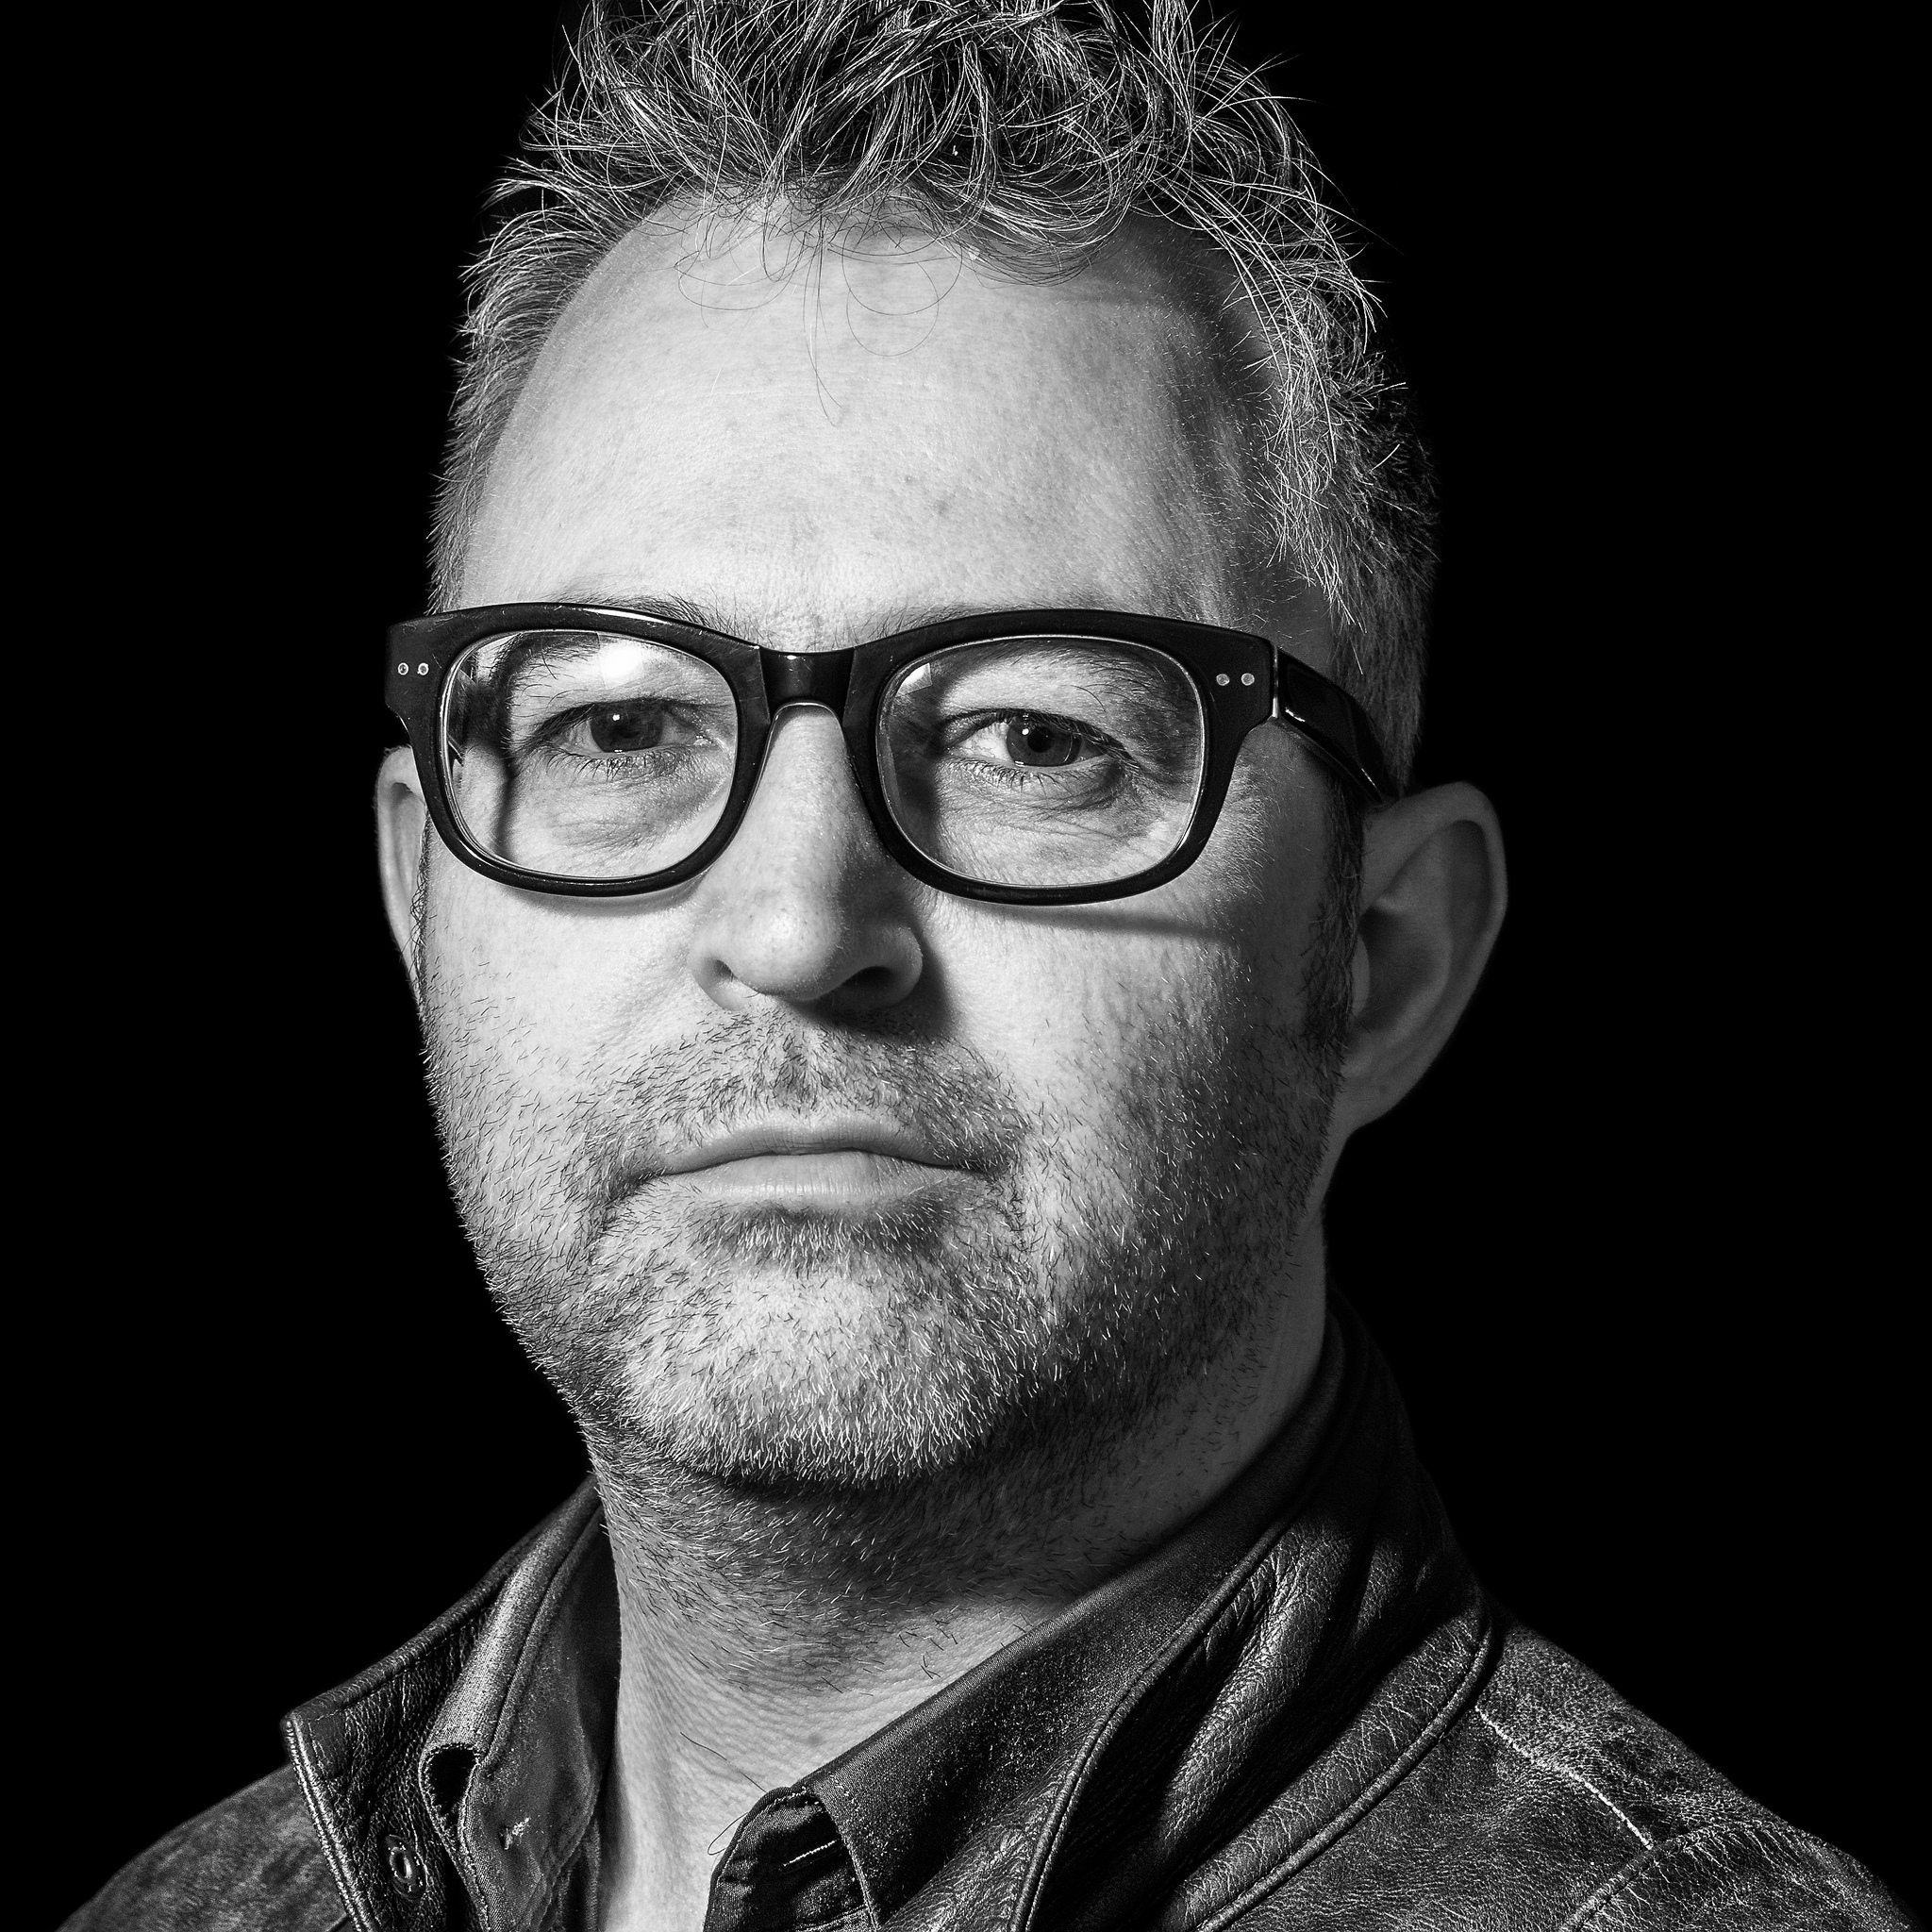 About | Mike Butcher